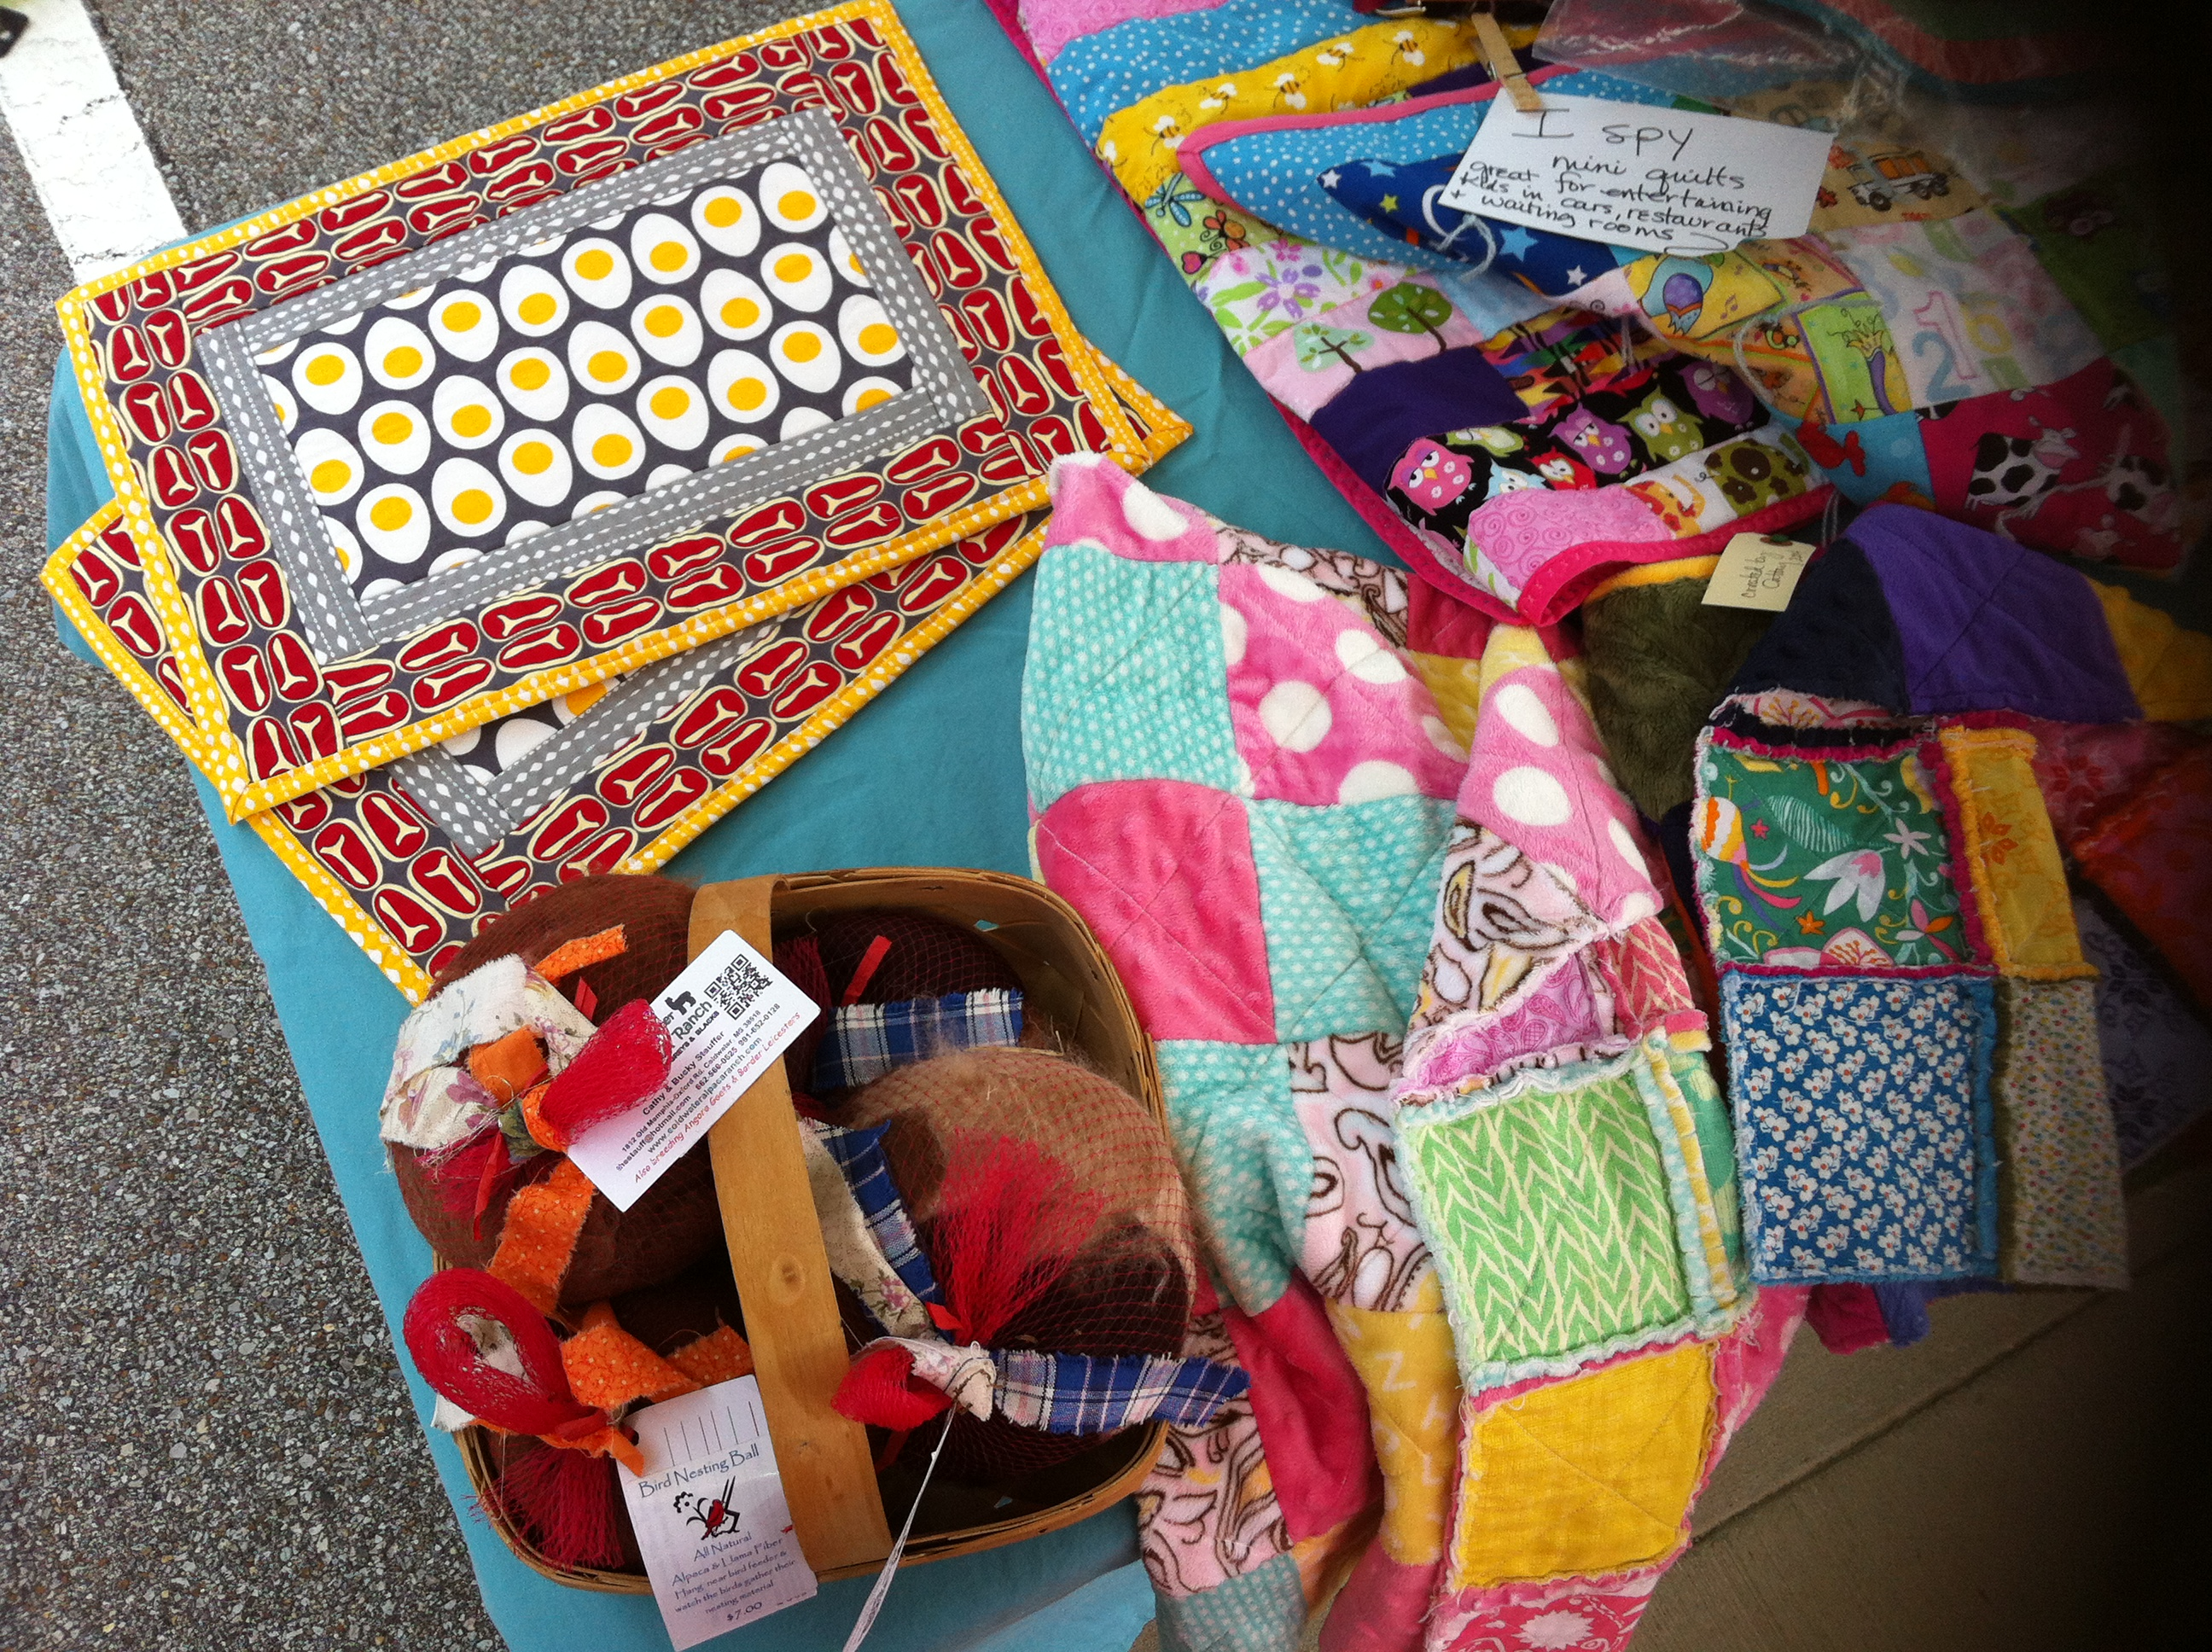 Collierville Farmers Market Quilts